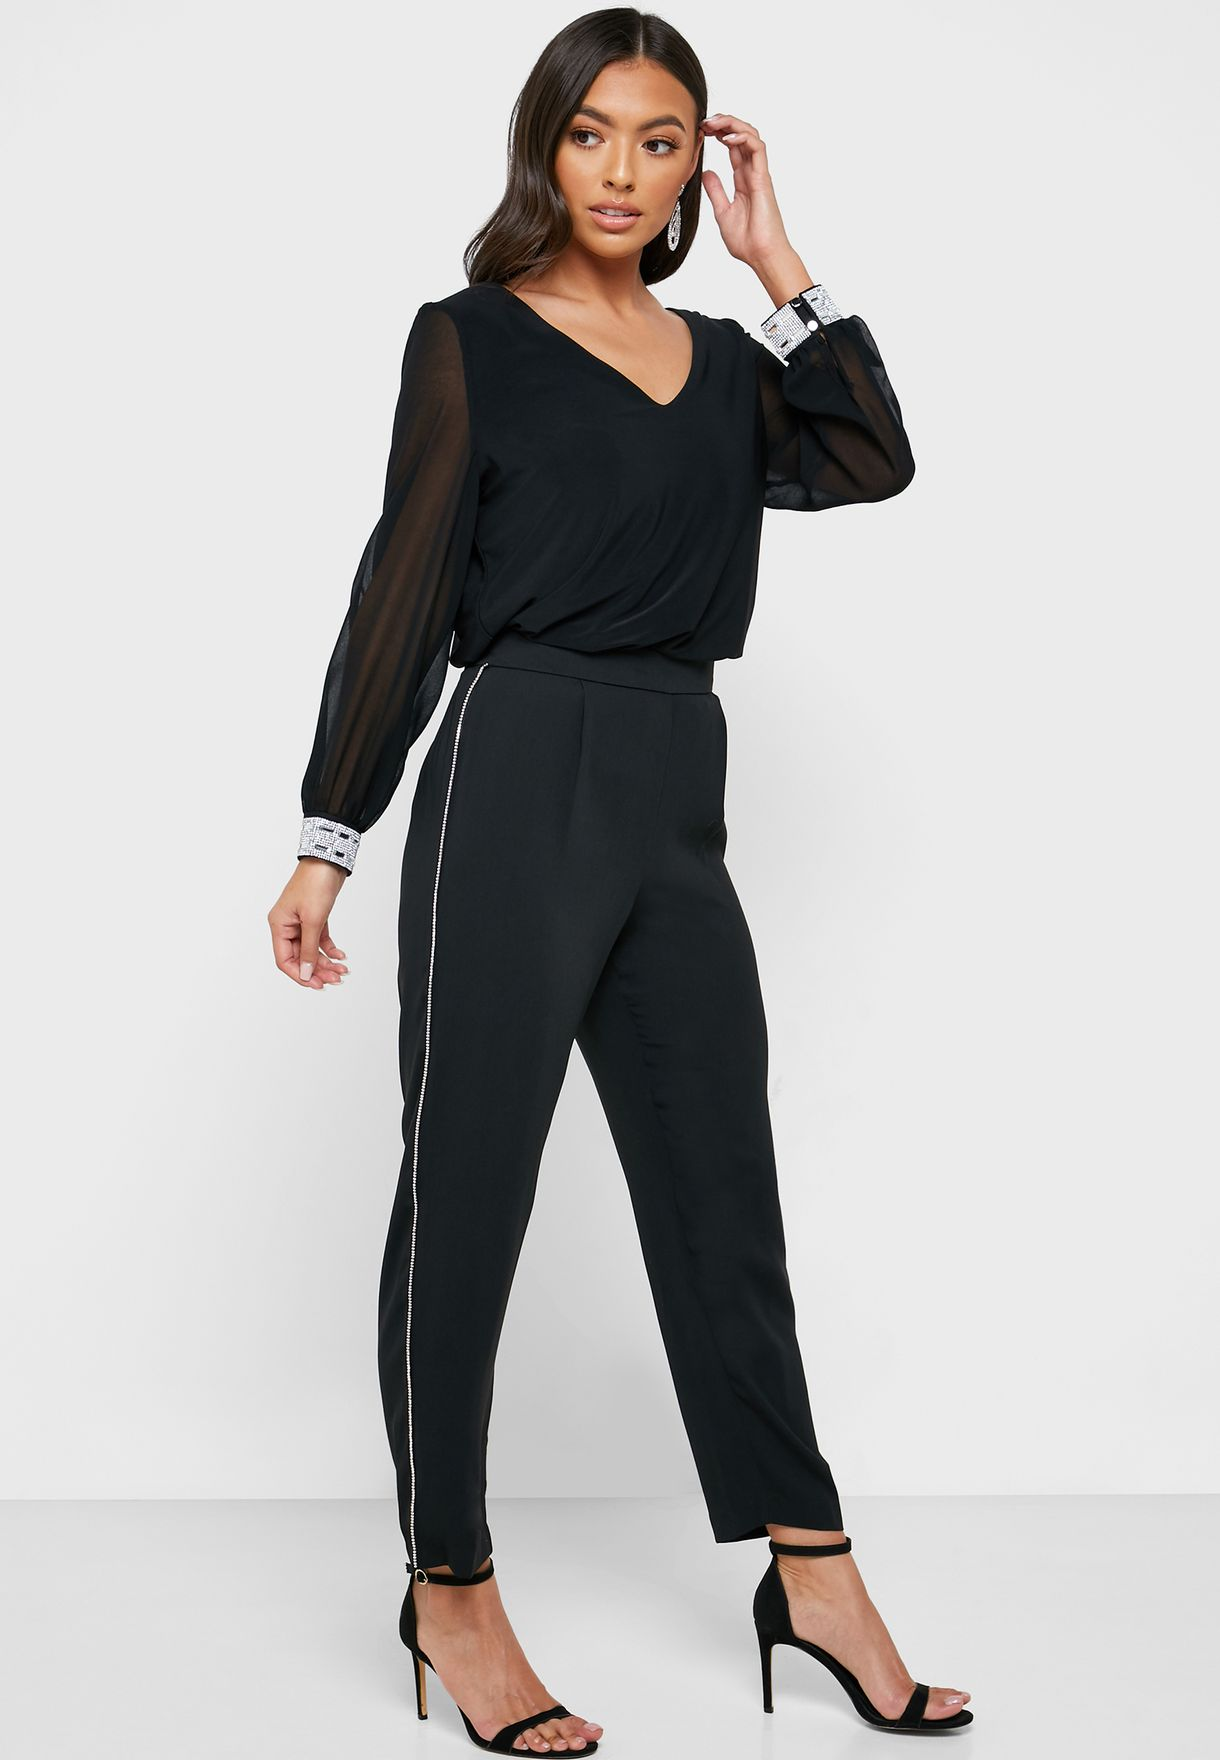 Ankle Grazer Piping Pants